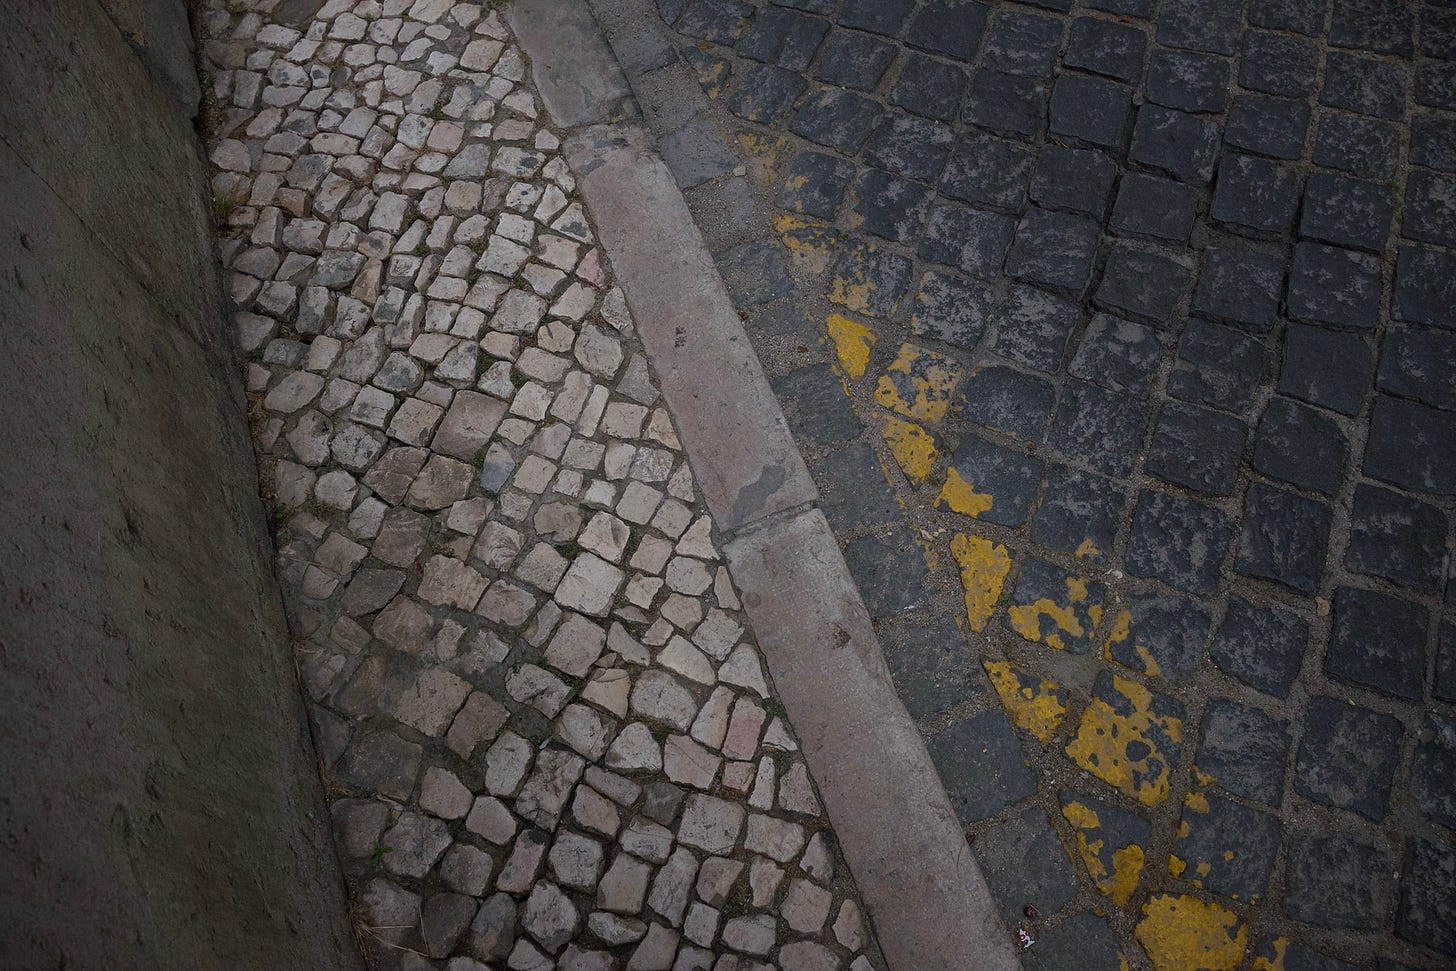 cobblestone road lines at an angle.